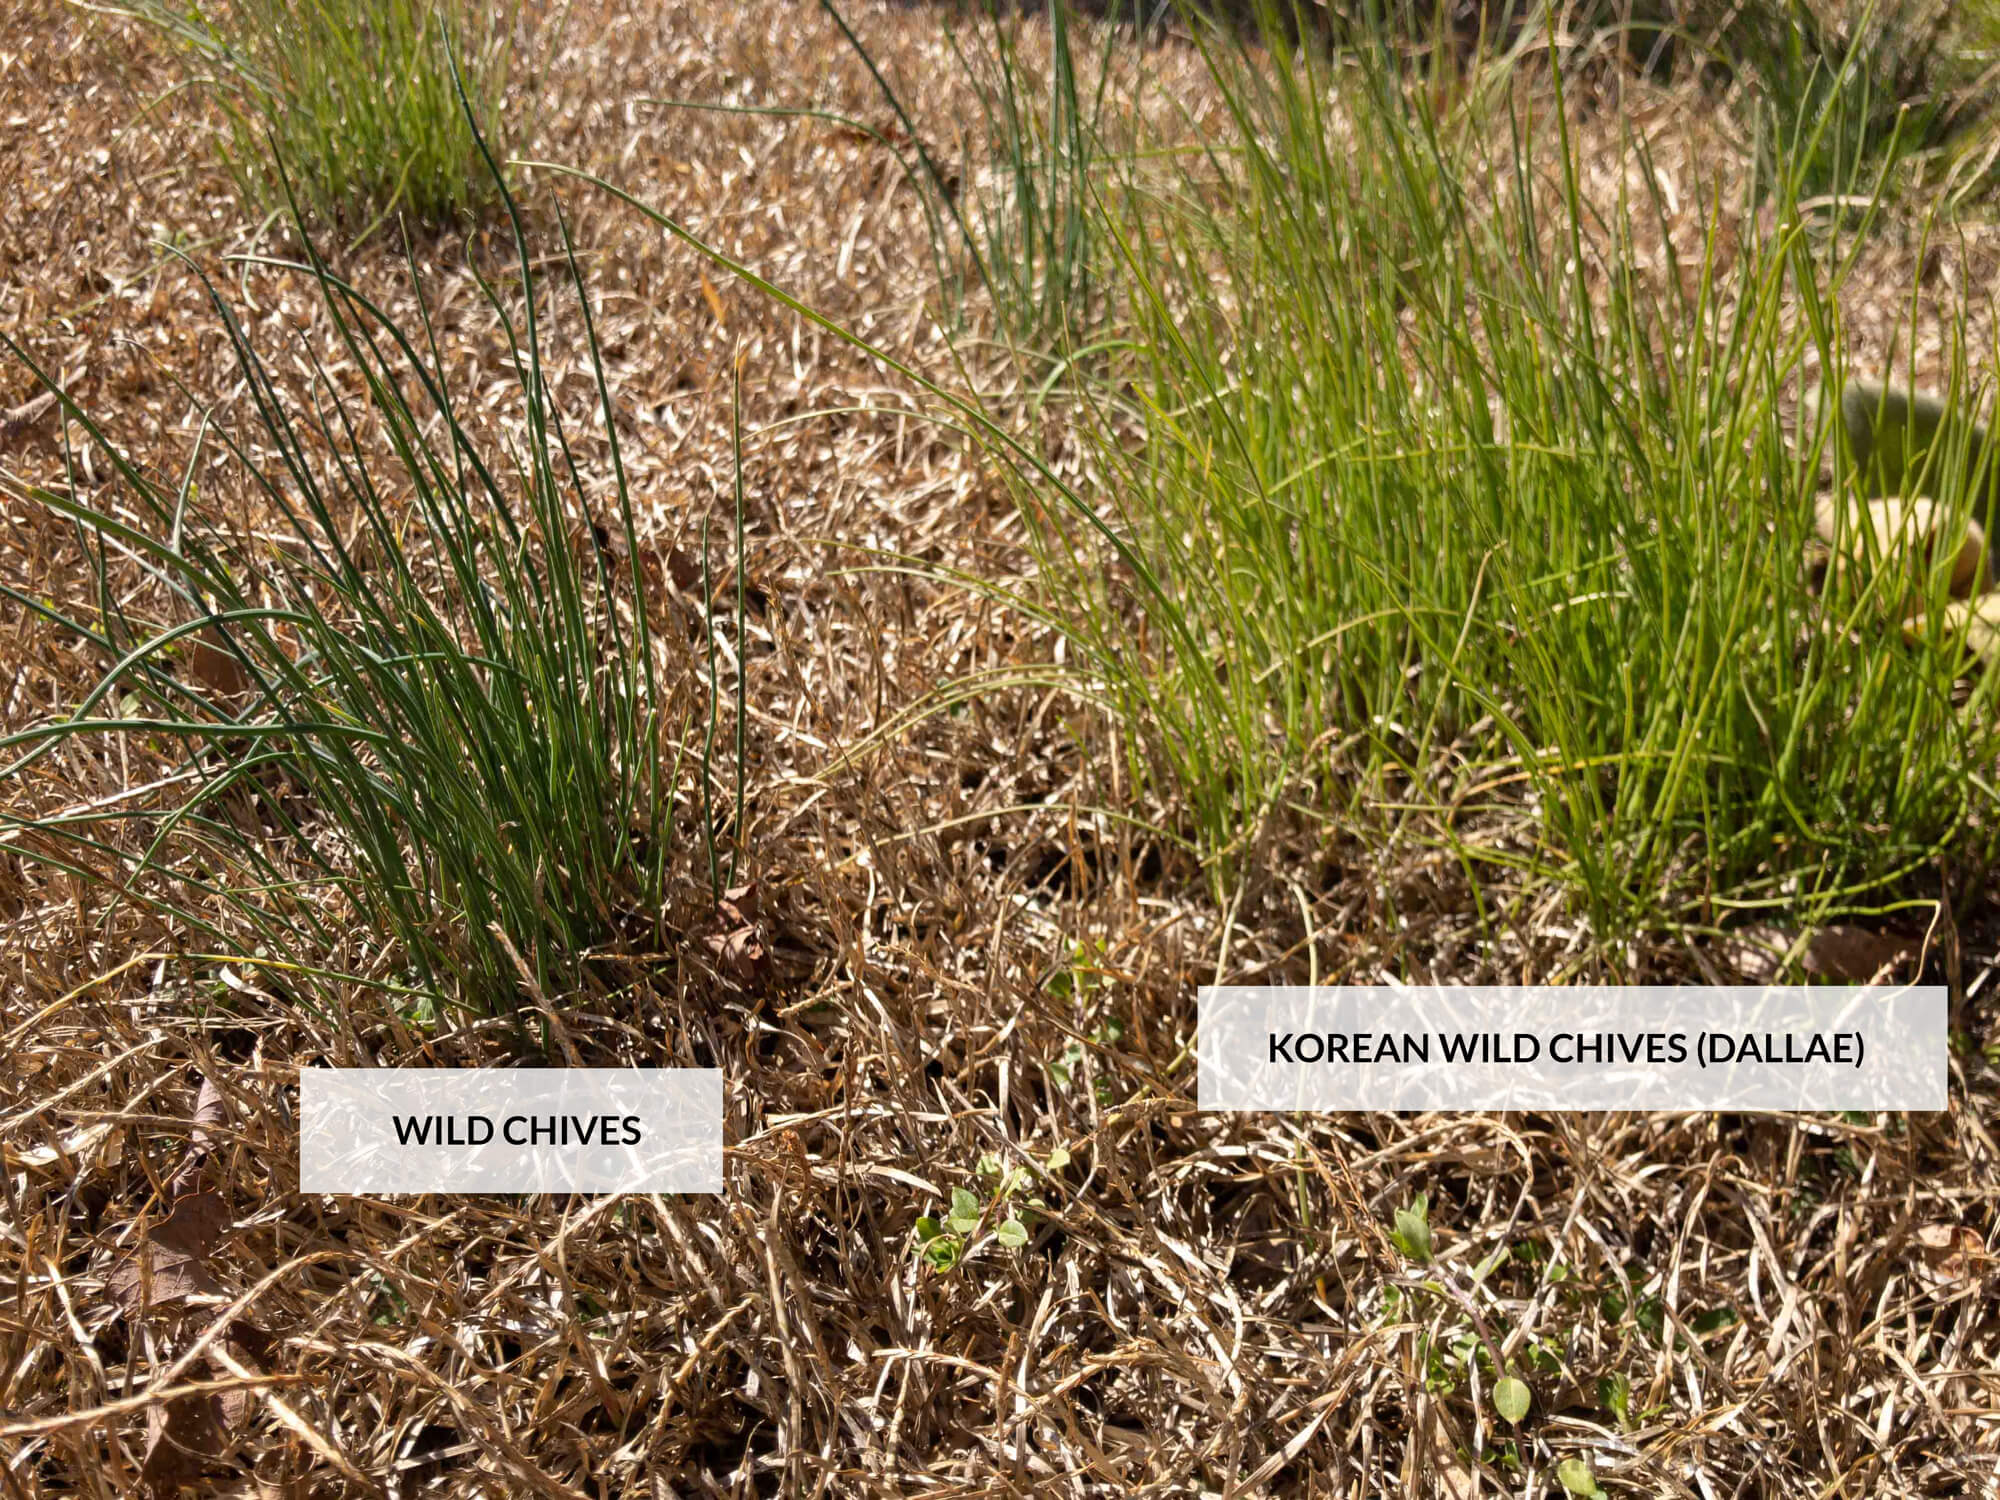 Difference between regular wild chives and Korean wild chives growing in the wild